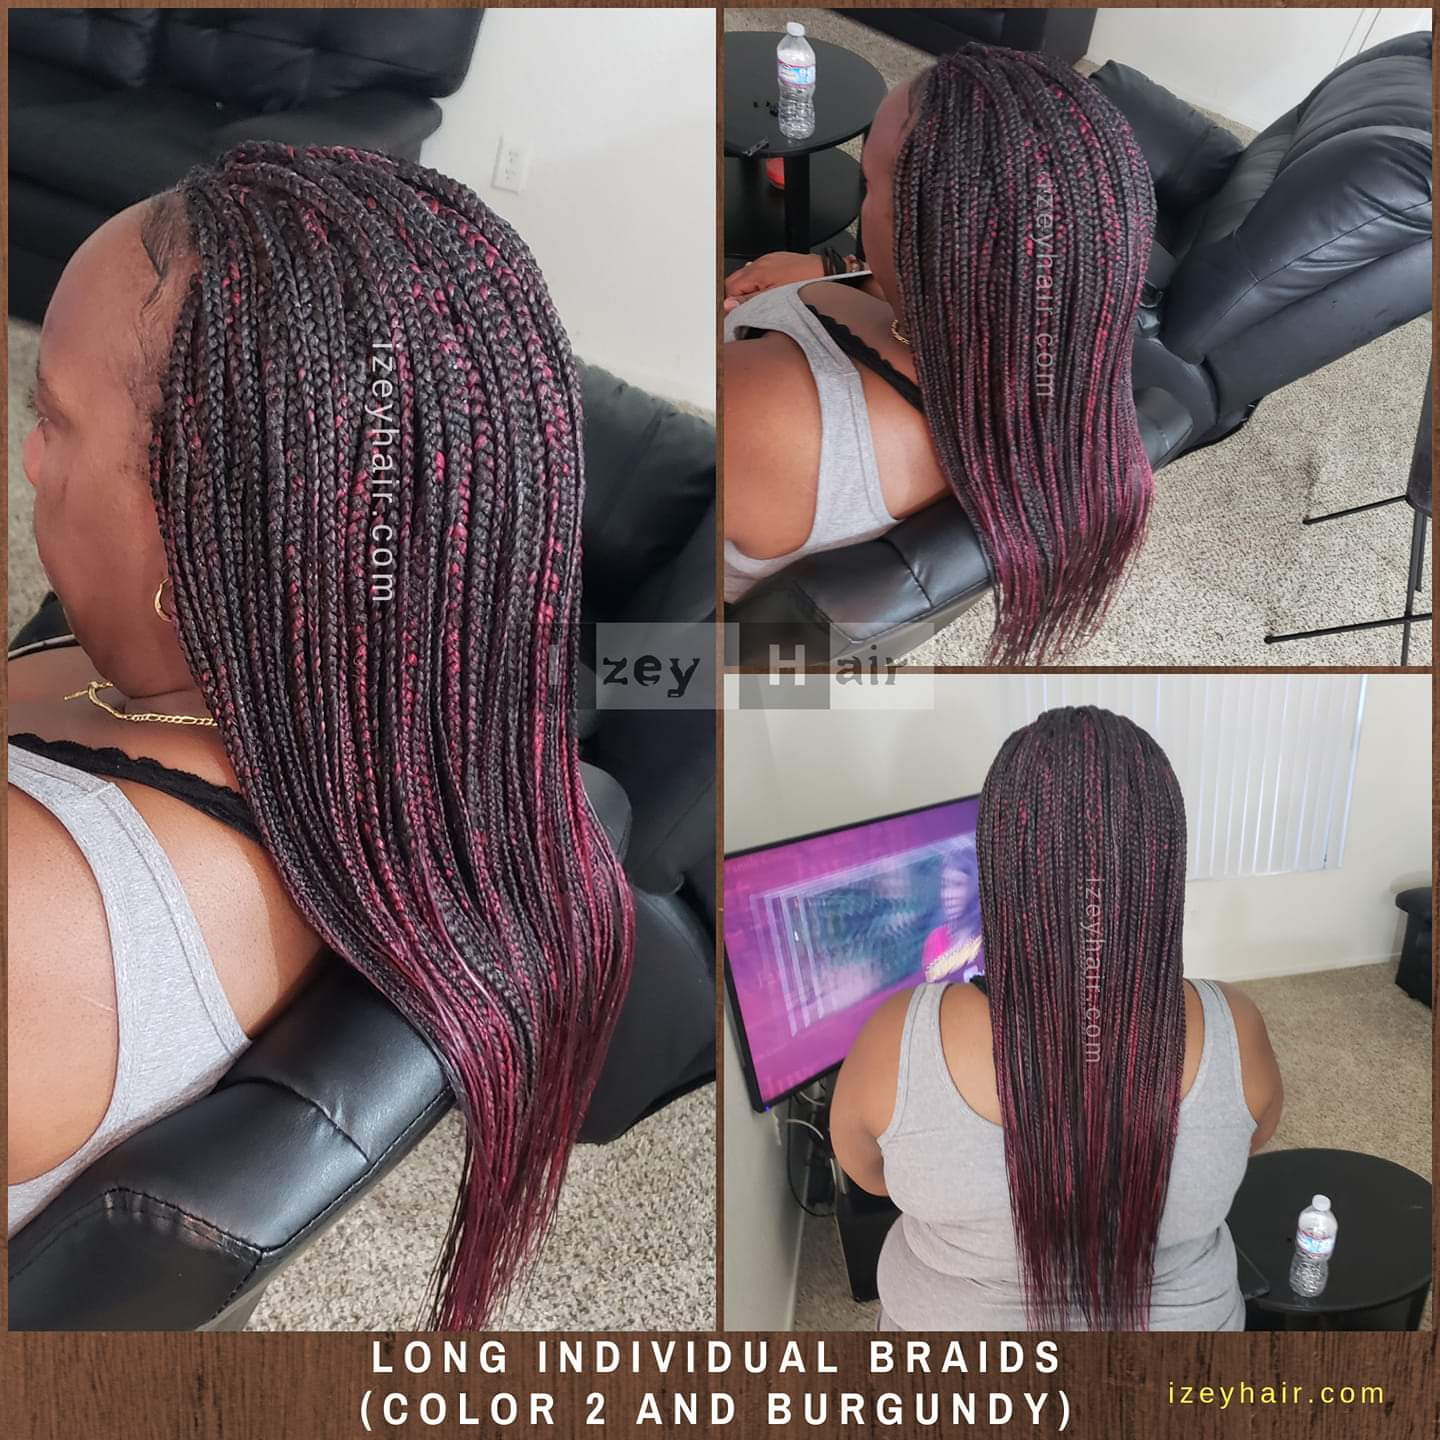 Long Waist-length Individual Box Braids - Color 2 and Burgundy